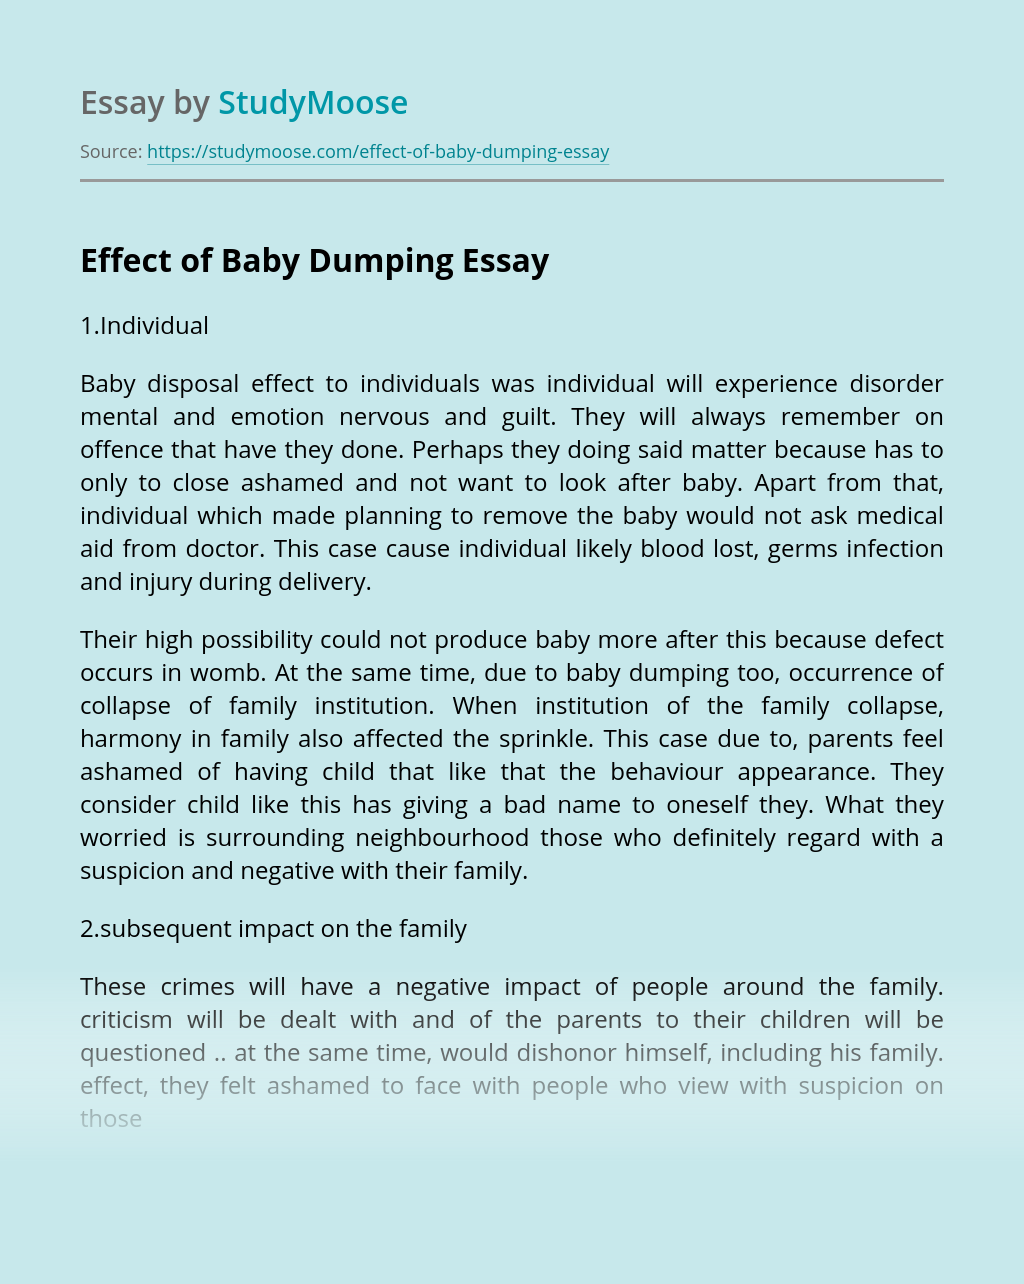 Effect of Baby Dumping